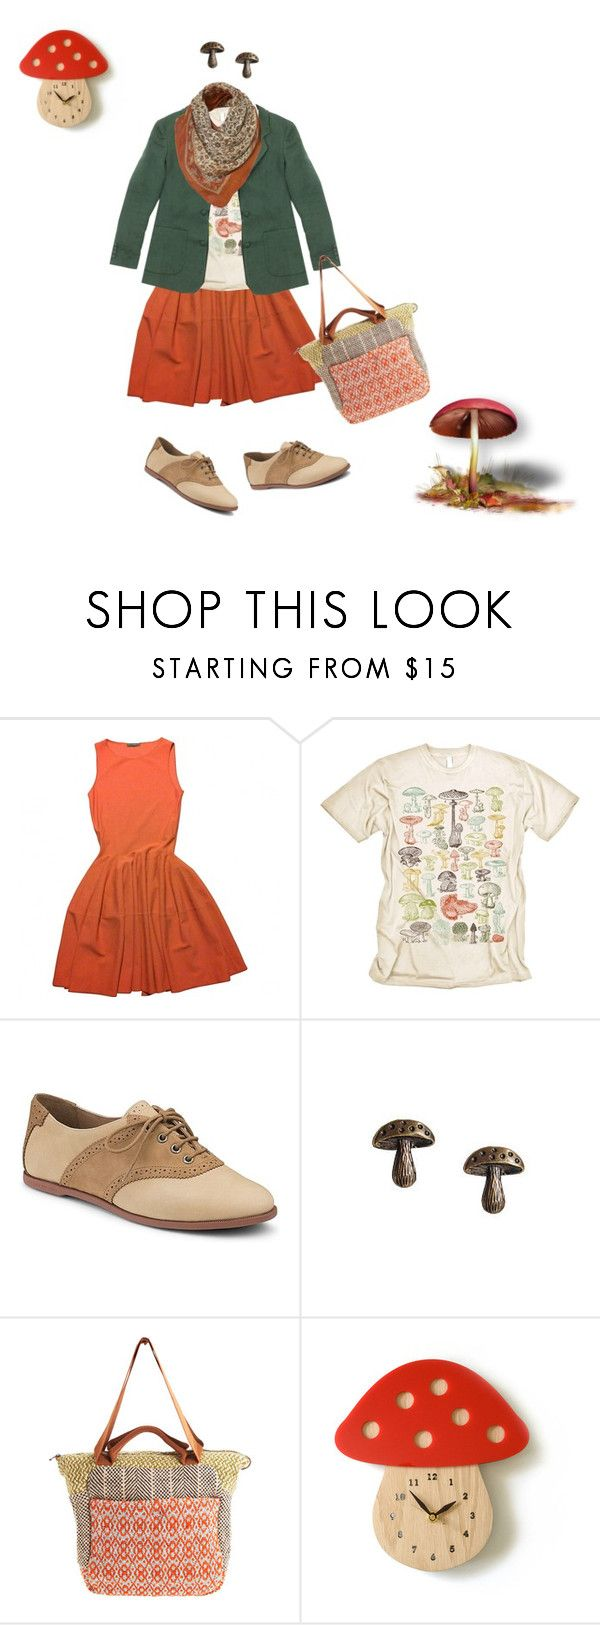 """""""It's Mushroom O'clock."""" by sparkles-and-salamanders ❤ liked on Polyvore featuring Alexander McQueen, Sperry, Maria La Rosa and WALL"""